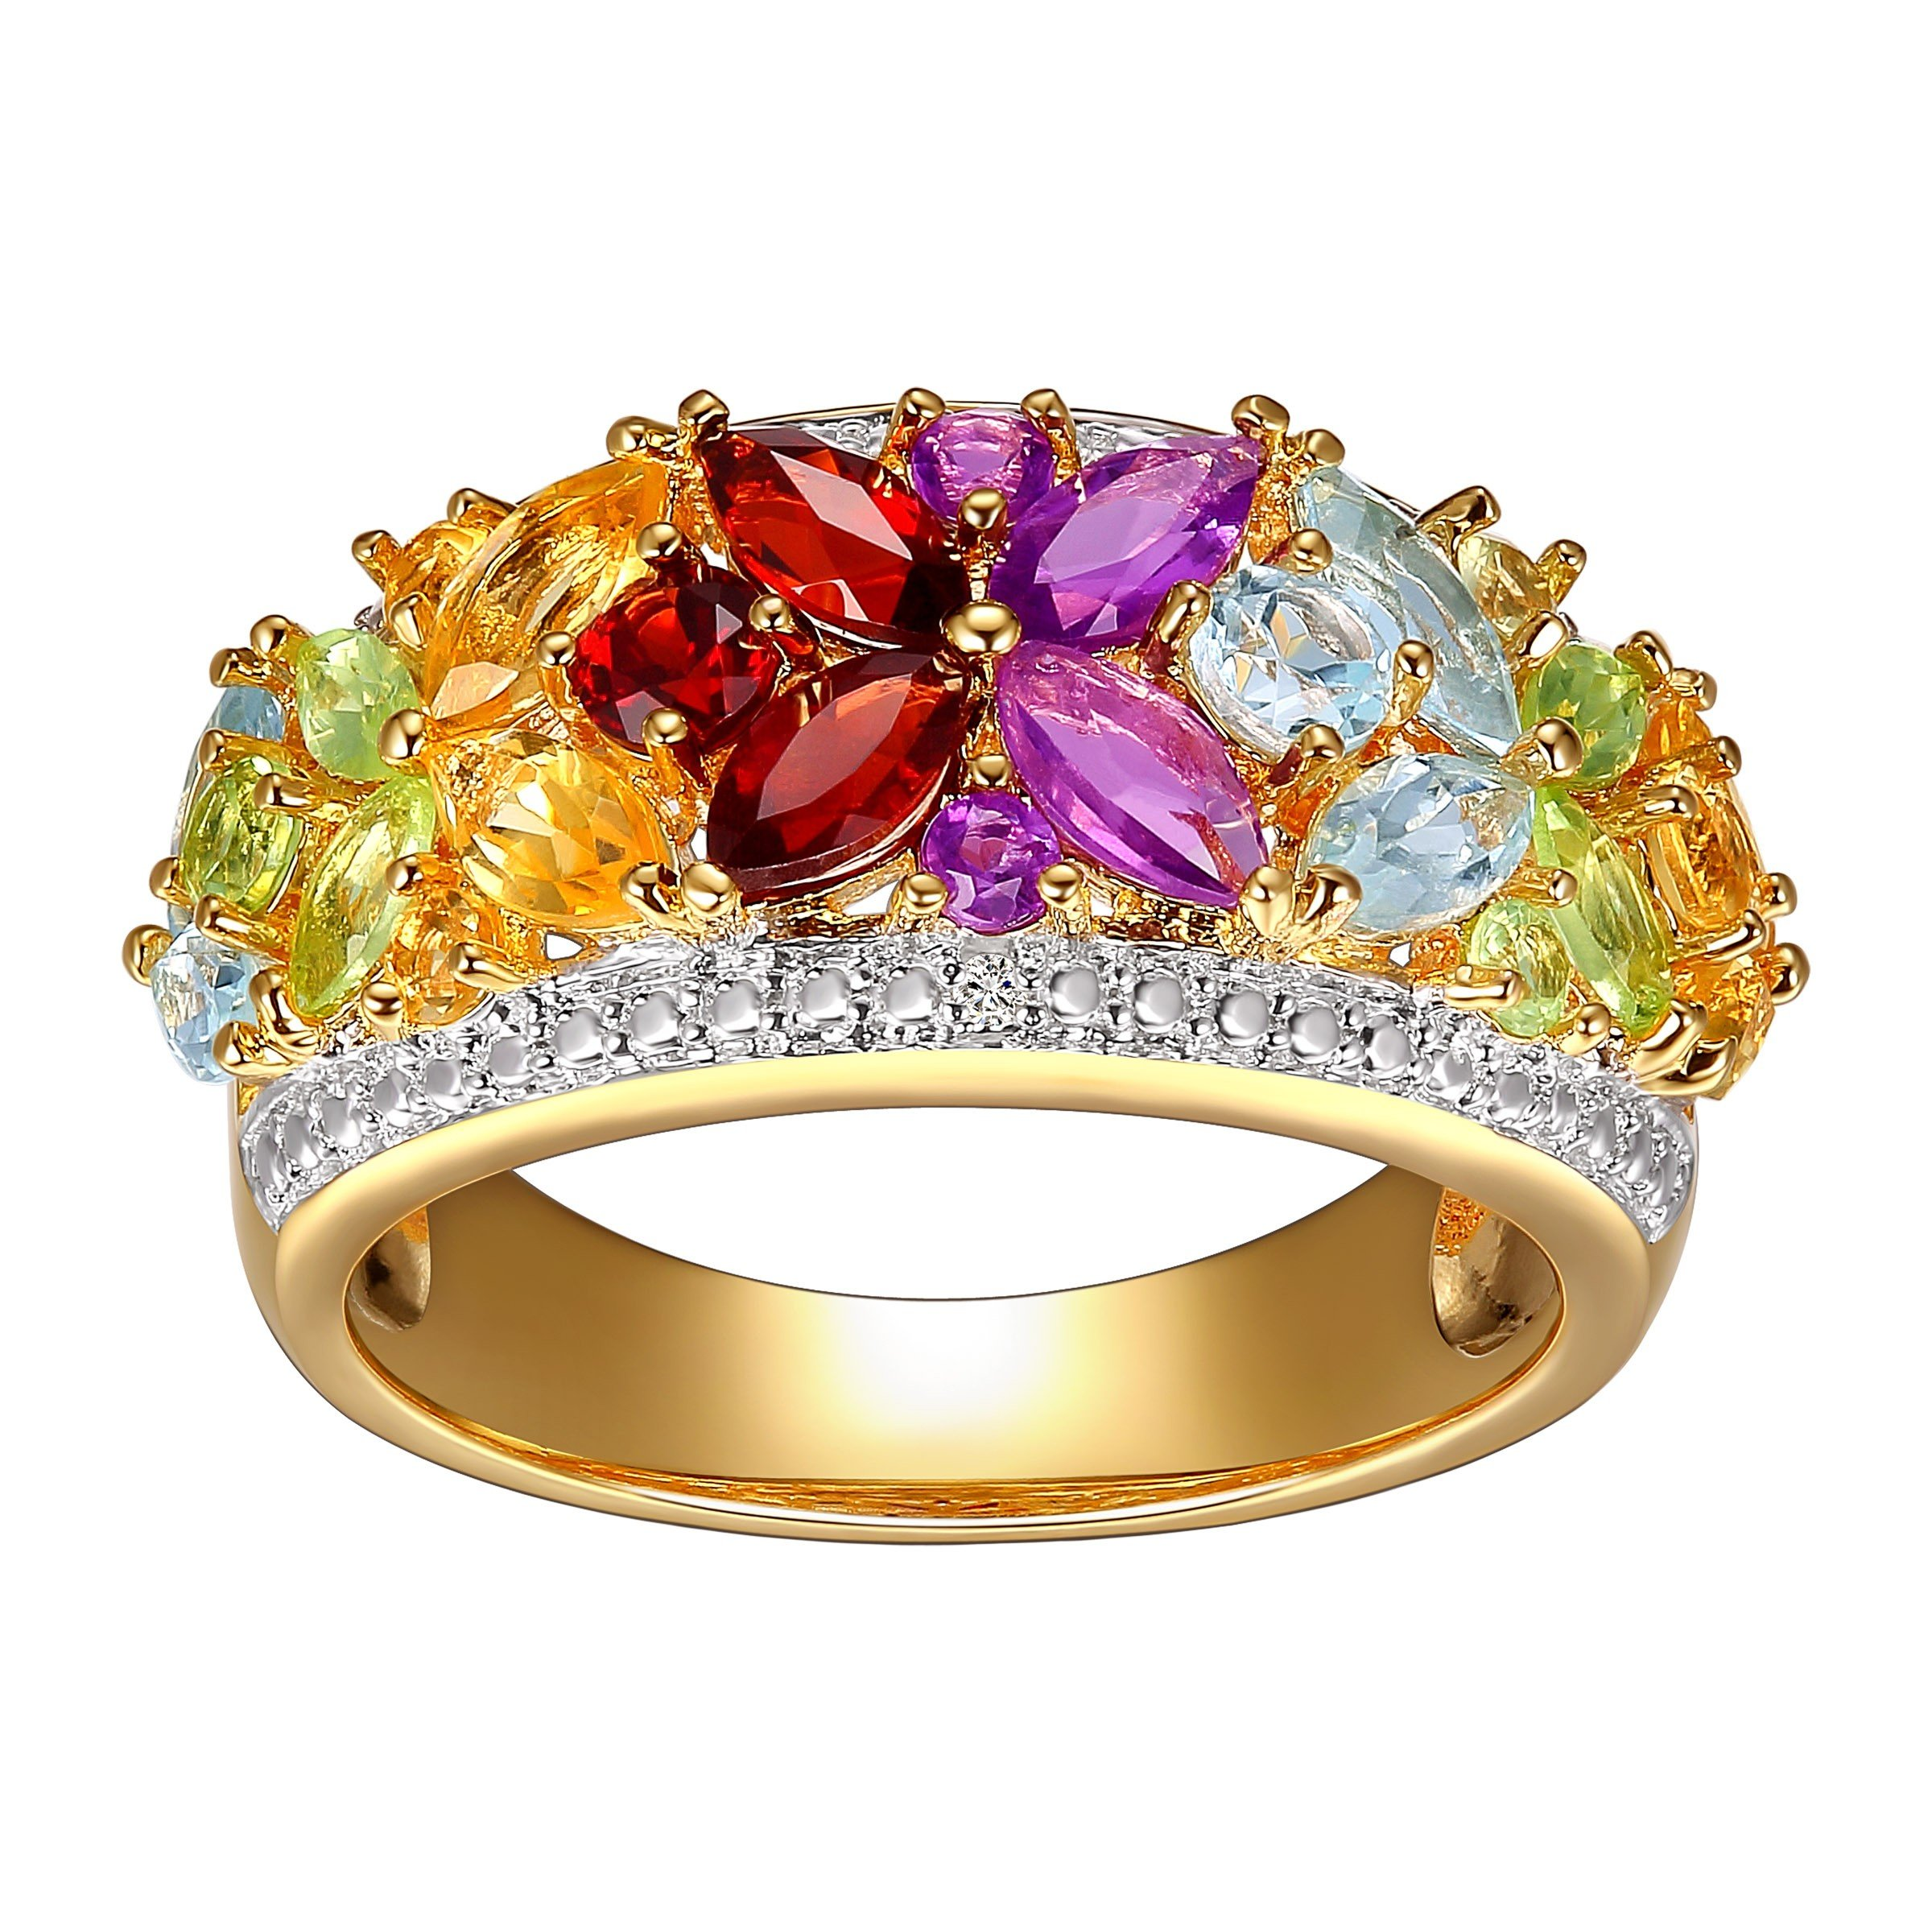 2 ct Natural Multi Semi-Precious Stone Ring with Diamonds in 18K Gold-Plated Sterling Silver Size 7